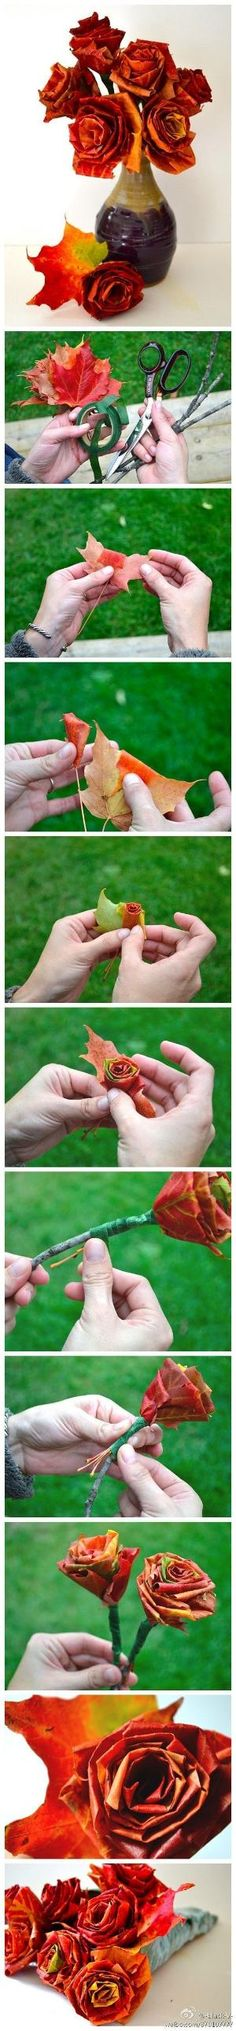 Roses are red, Fall skies are blue, leaves are a-tumbling, so here's what you do... make maple leaf roses! #DIY by Raelynn8